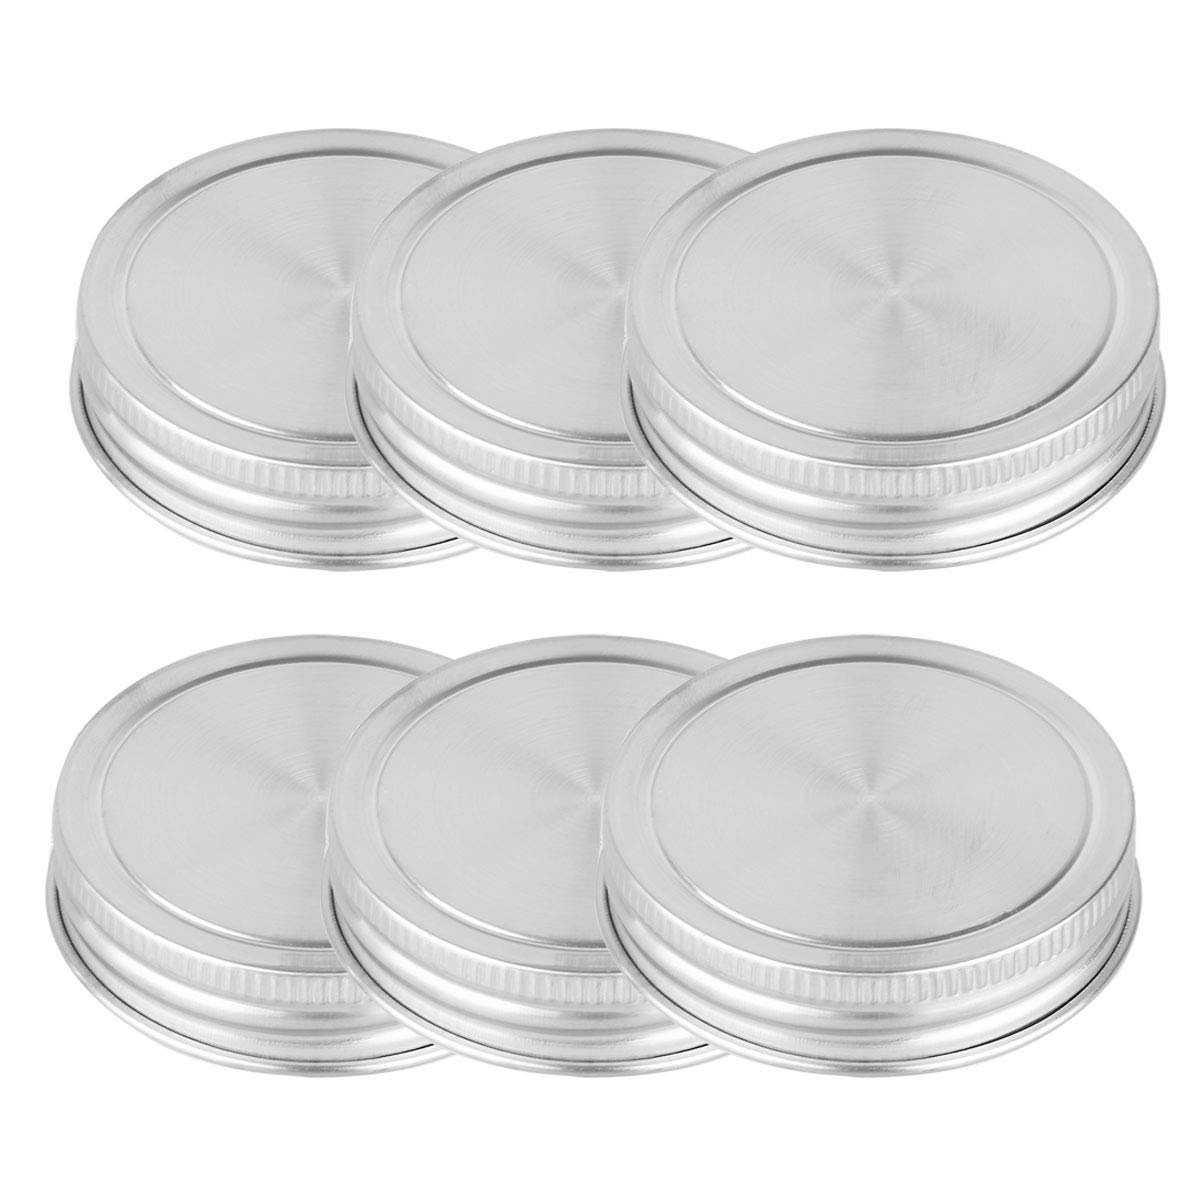 iEFiEL Rust Resistant Stainless Steel Storage Caps Silicone Seals Mason Lids fits 70mm Mouth 6pcs One Size